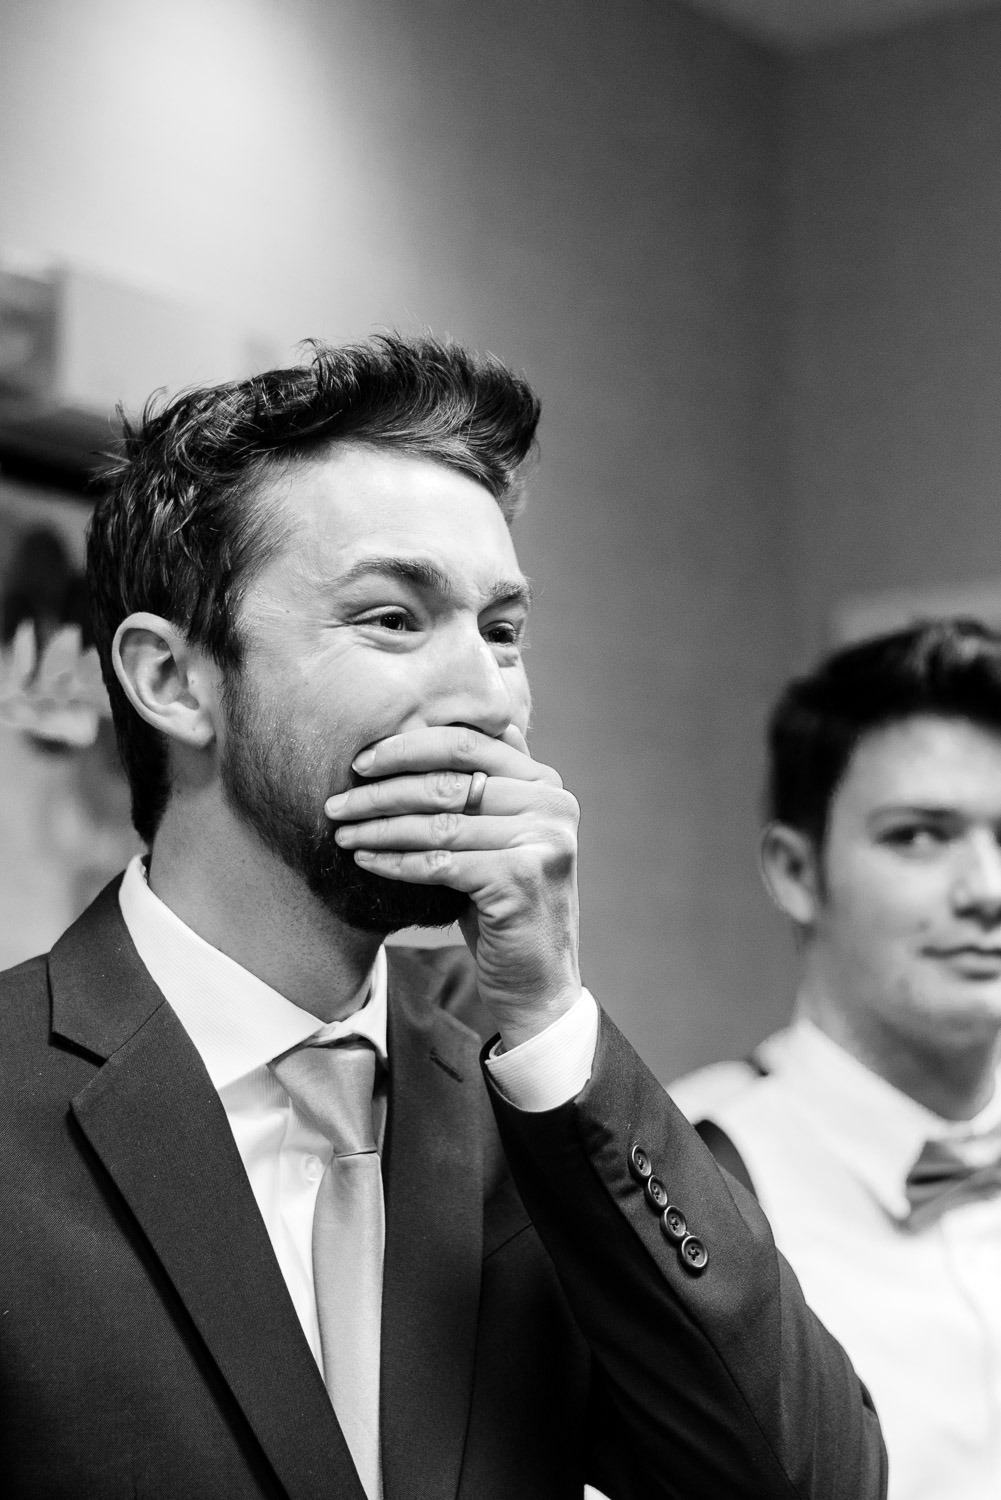 groom's reaction to seeing his bride walk in the room at their hotel wedding ceremony